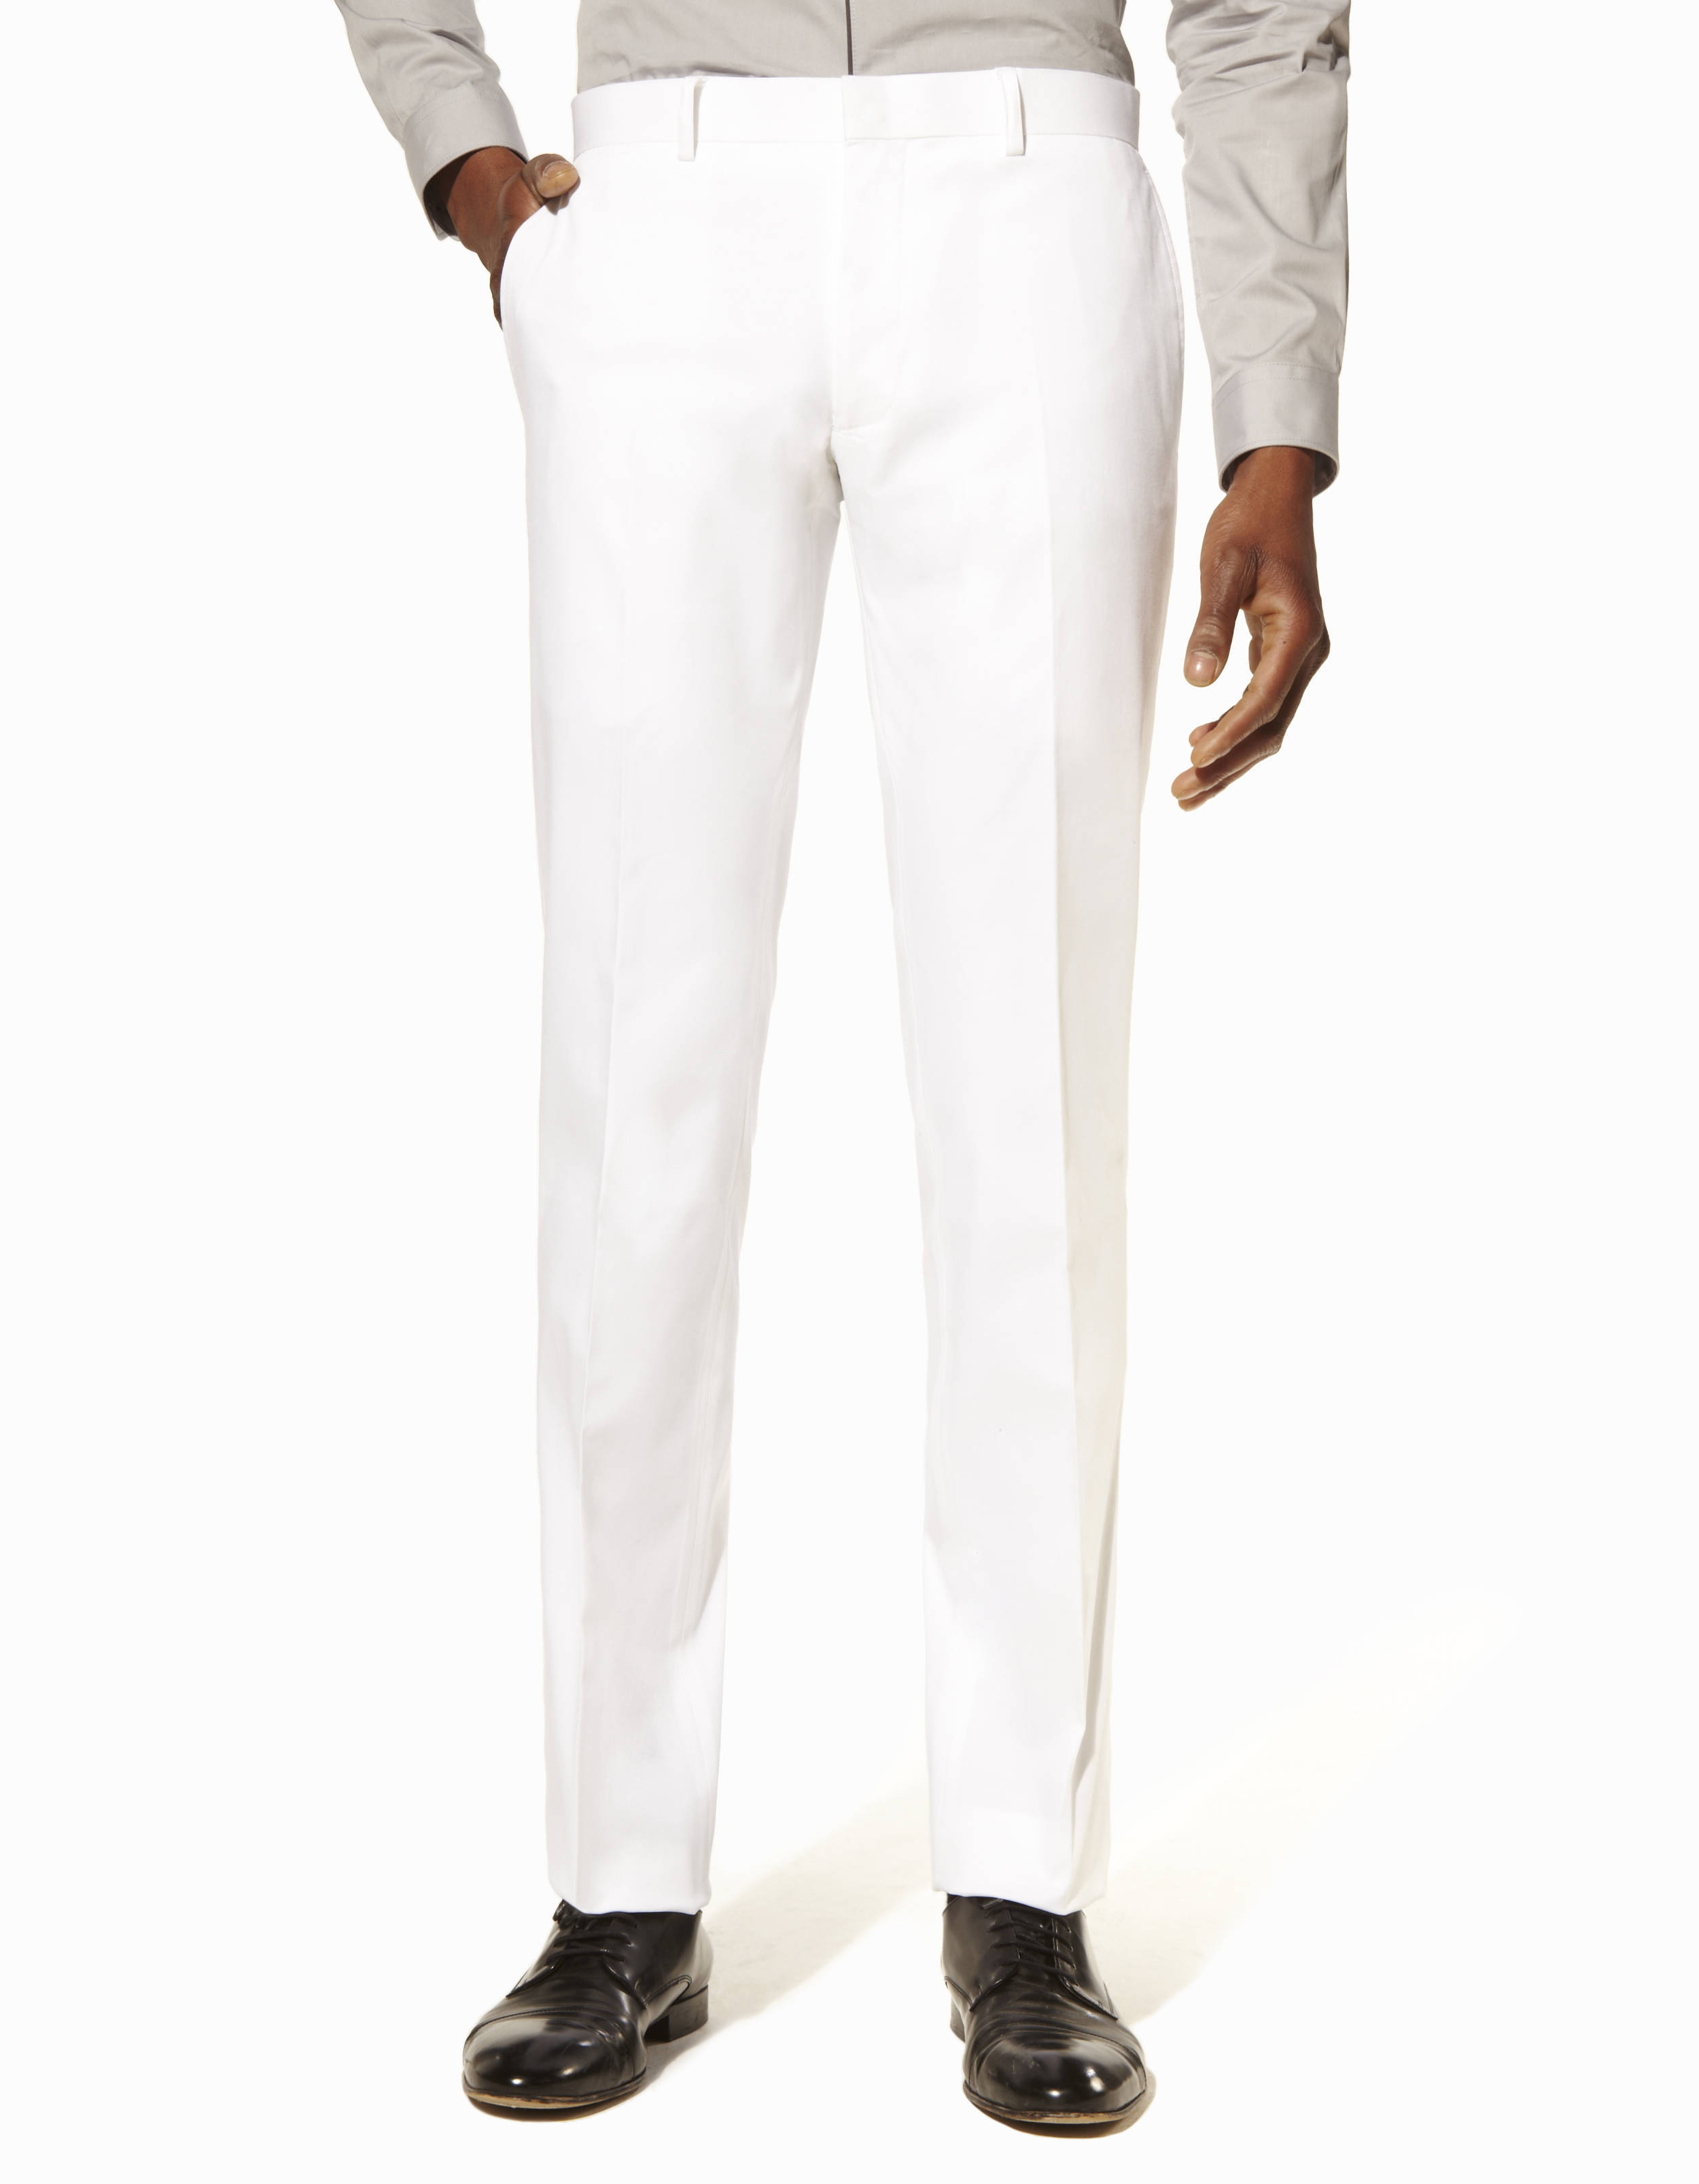 Uni Coton Coordonnable Stretch Boblanco Pantalon Coupe Slim 8OPwn0k